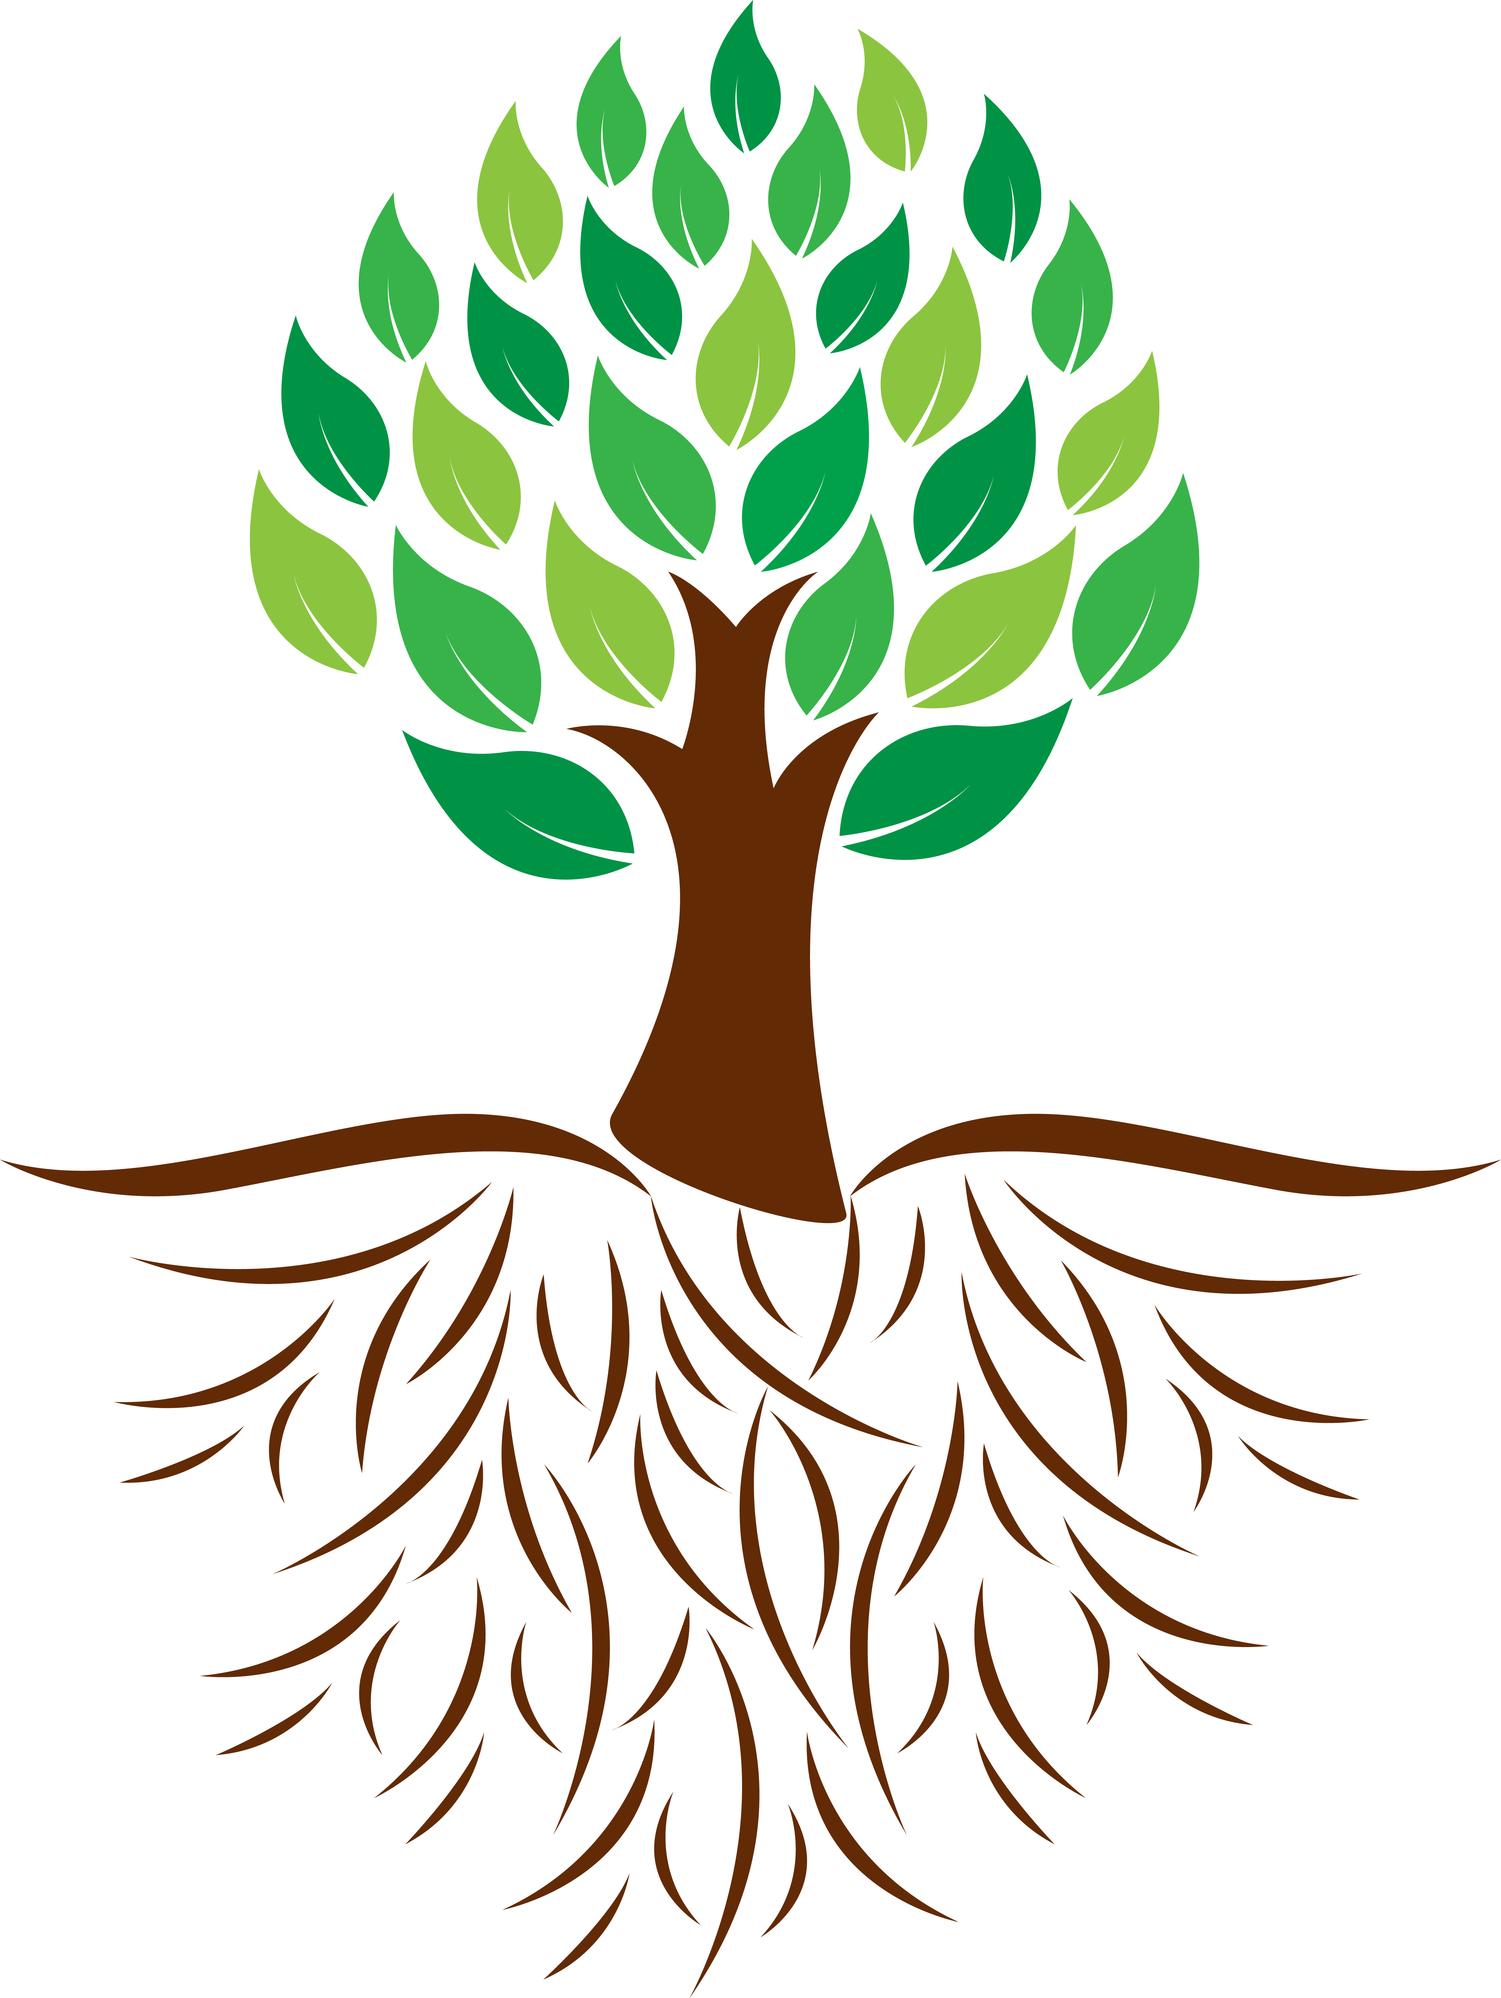 Roots clipart. Tree with